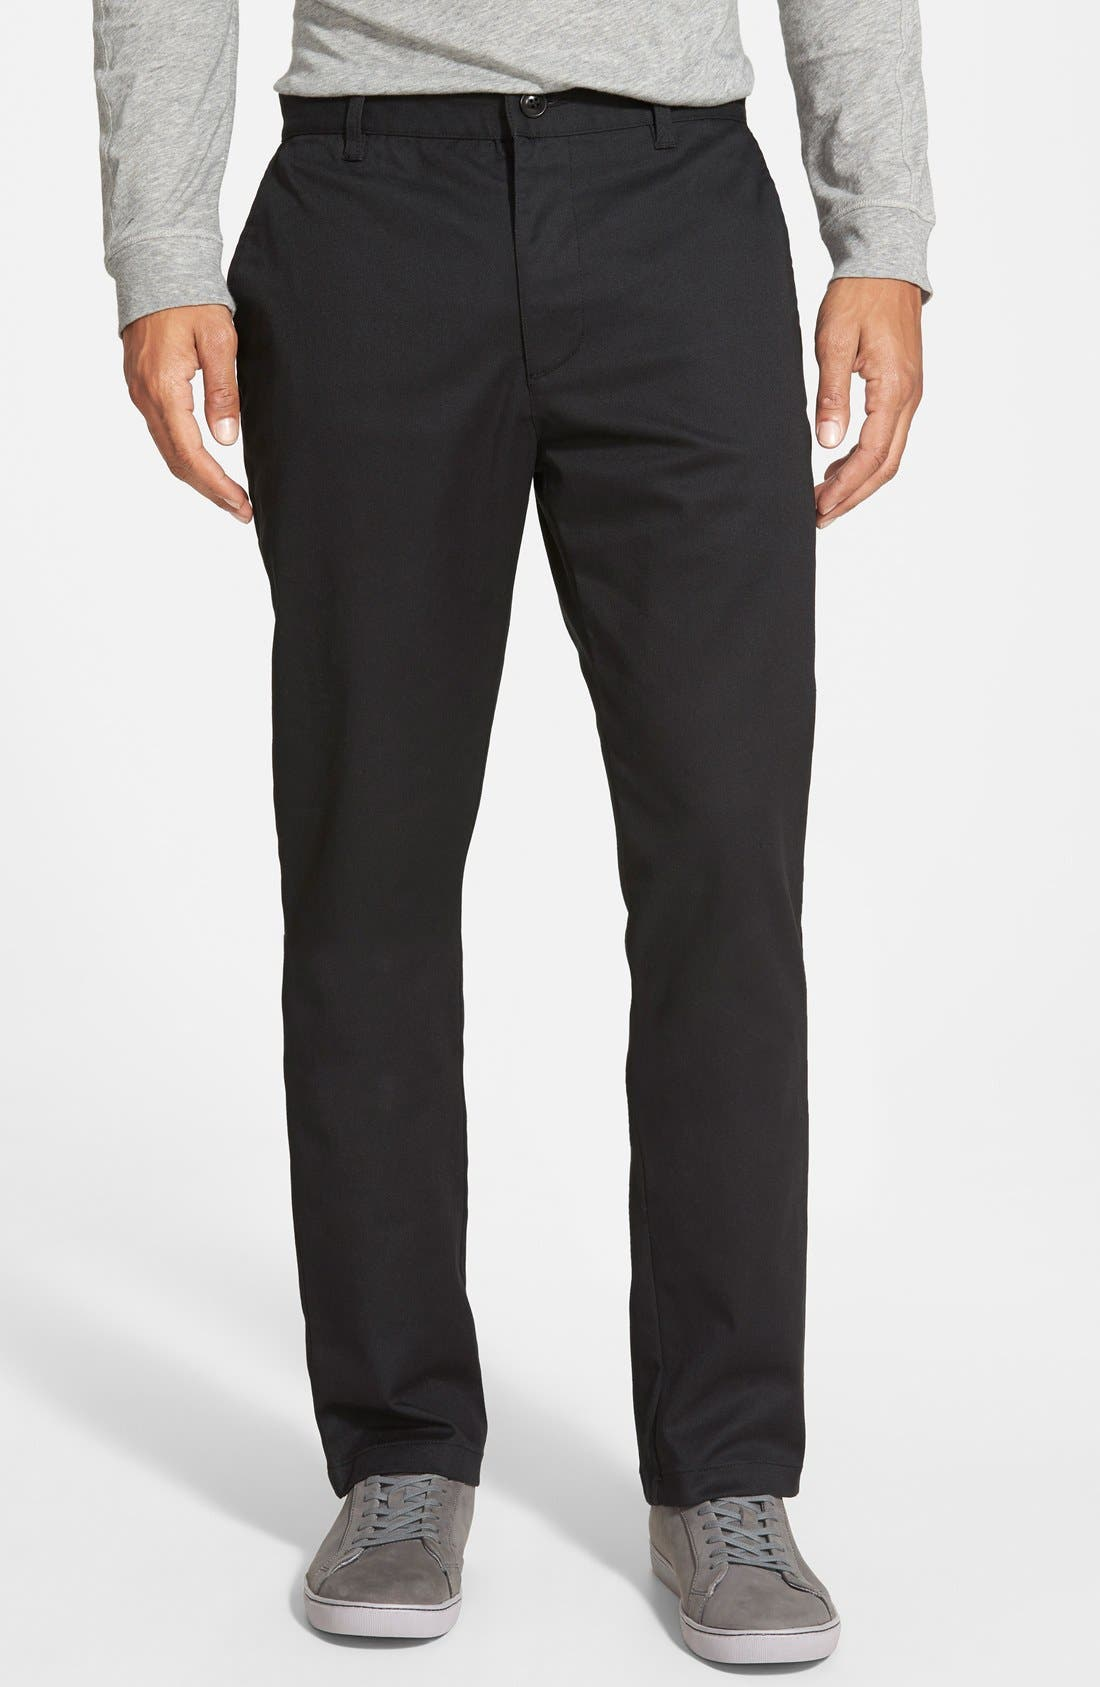 'The Week-End' Slim Straight Leg Stretch Twill Chinos,                         Main,                         color, BLACK